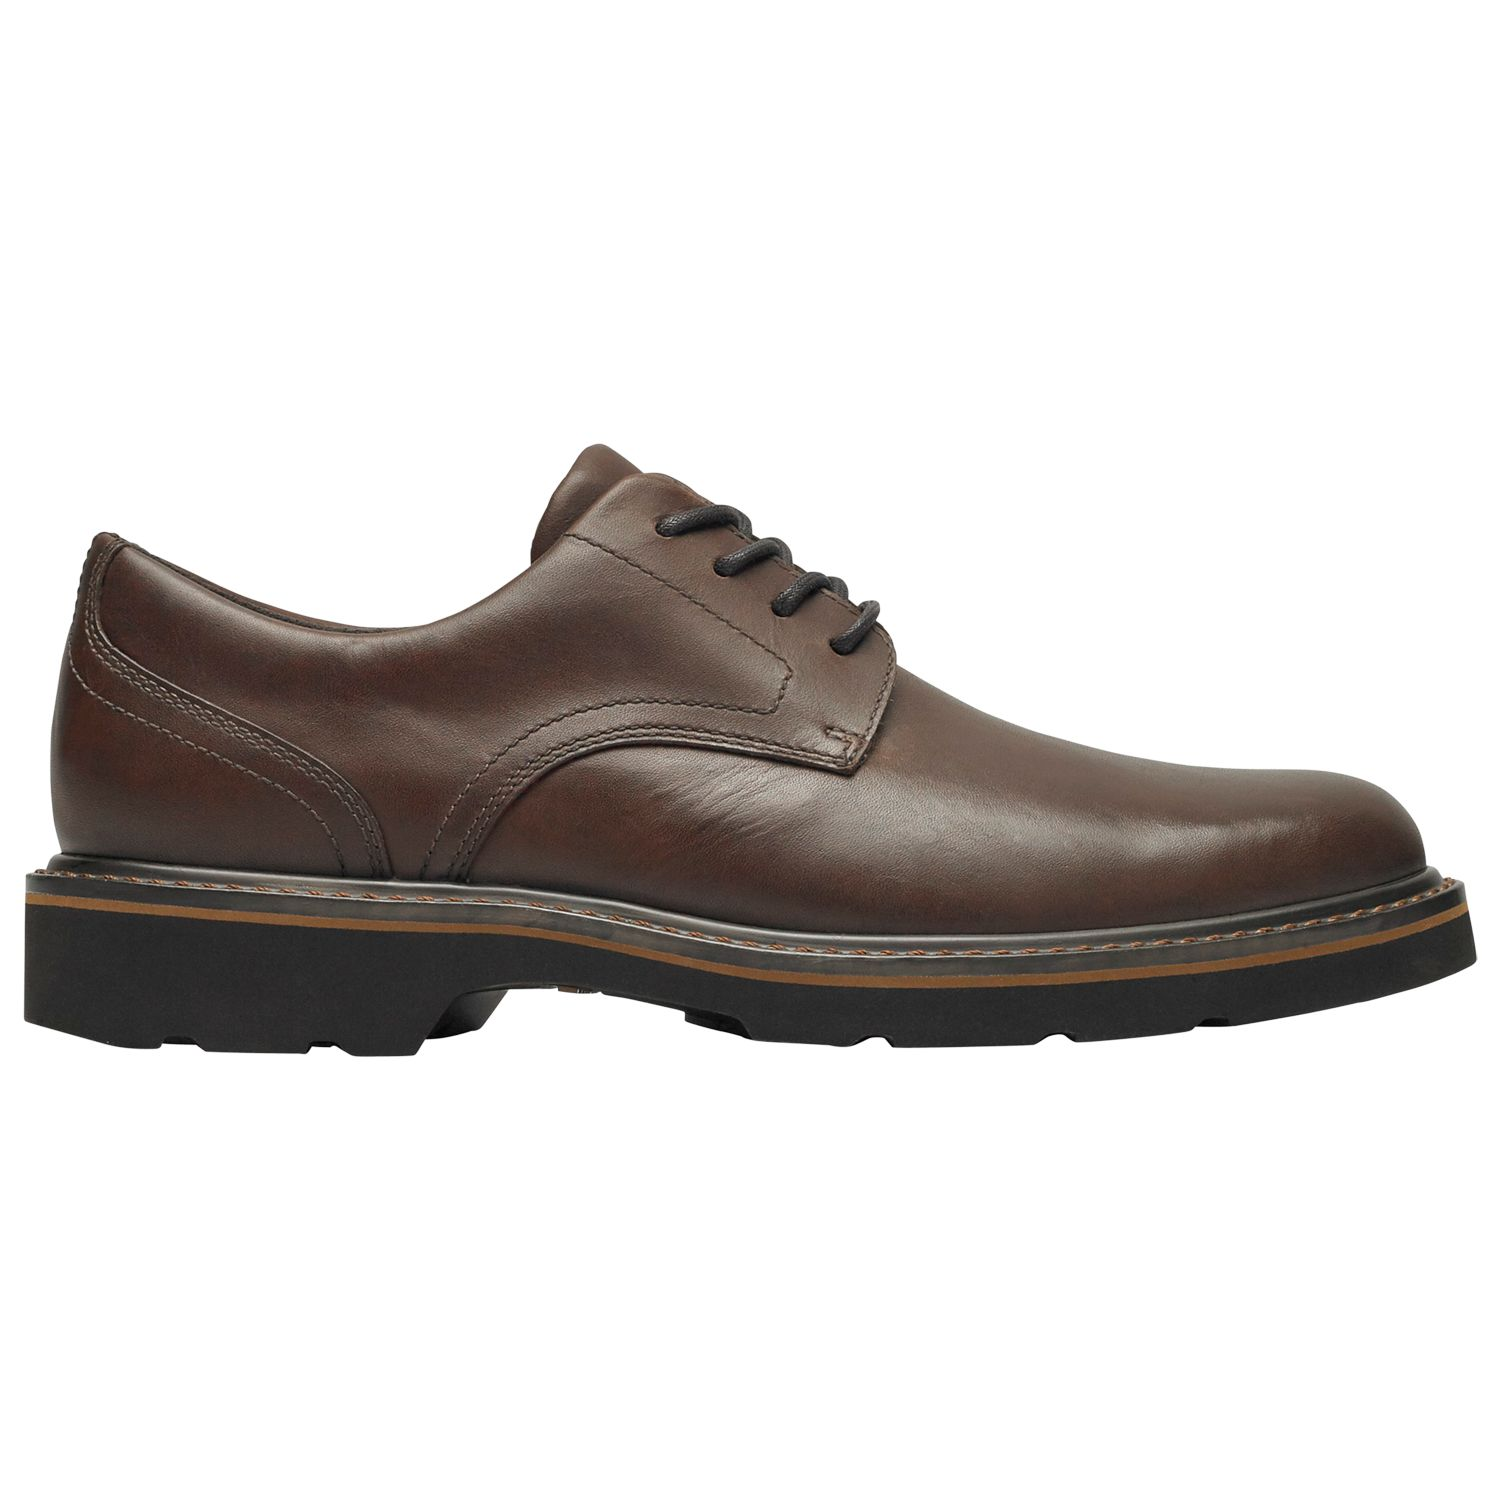 Rockport Rockport Charlee Waterproof Derby Shoes